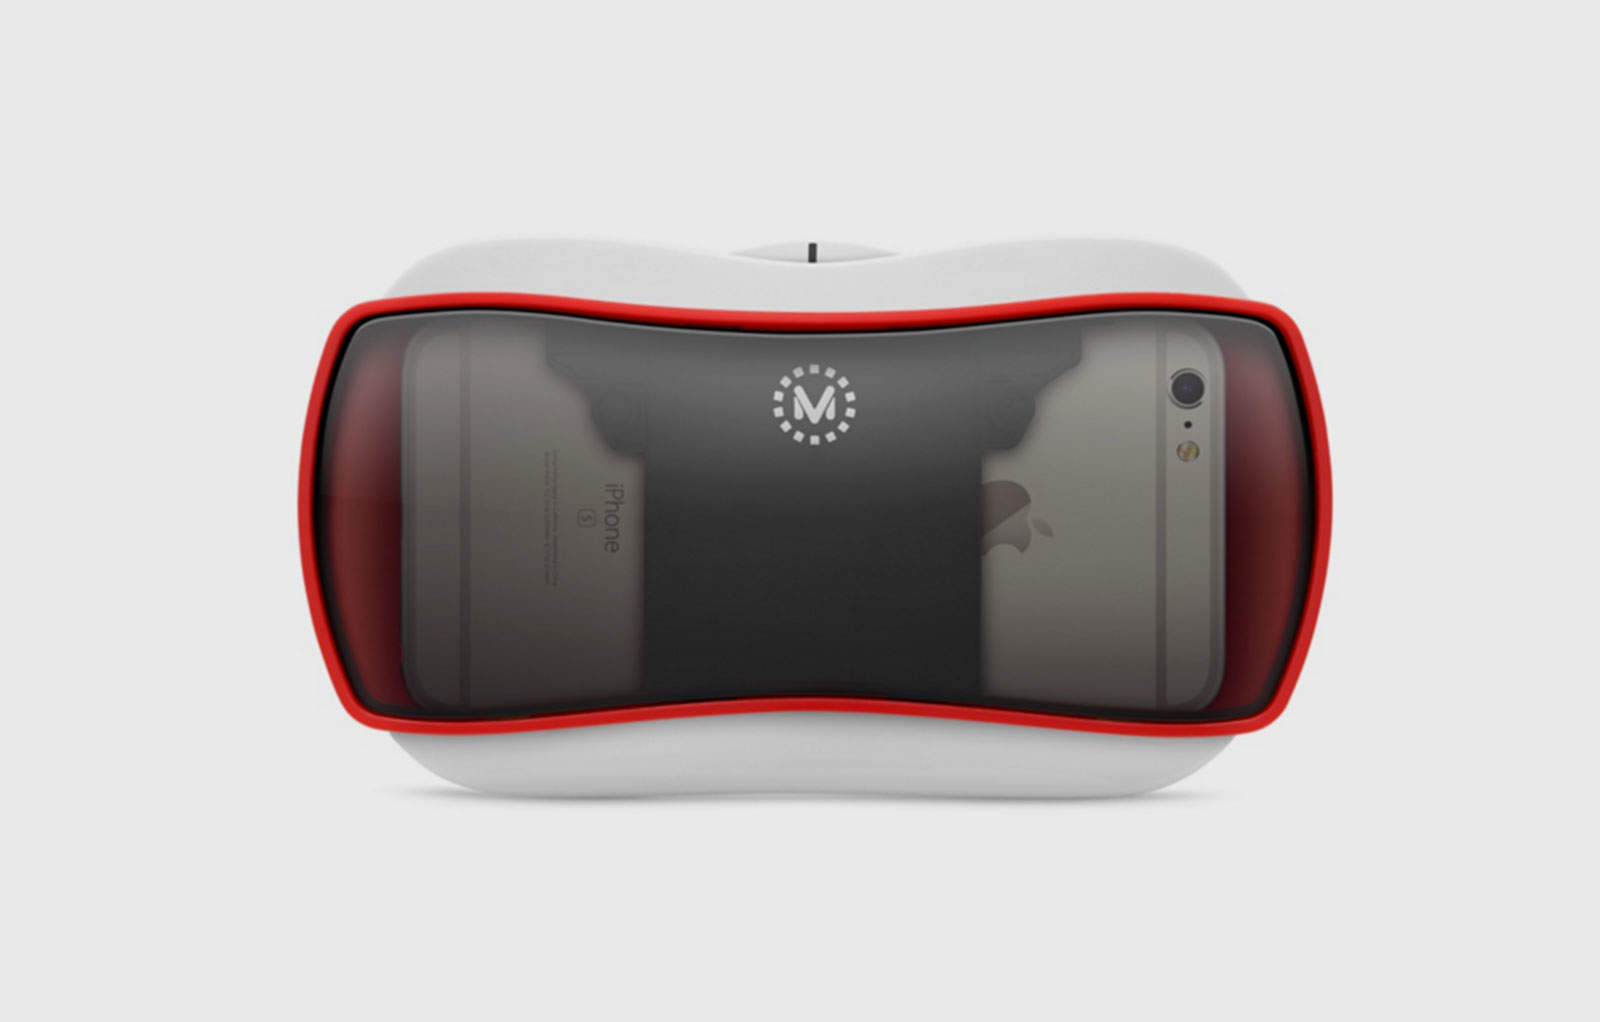 The iPhone looks good inside the View-Master VR headset.